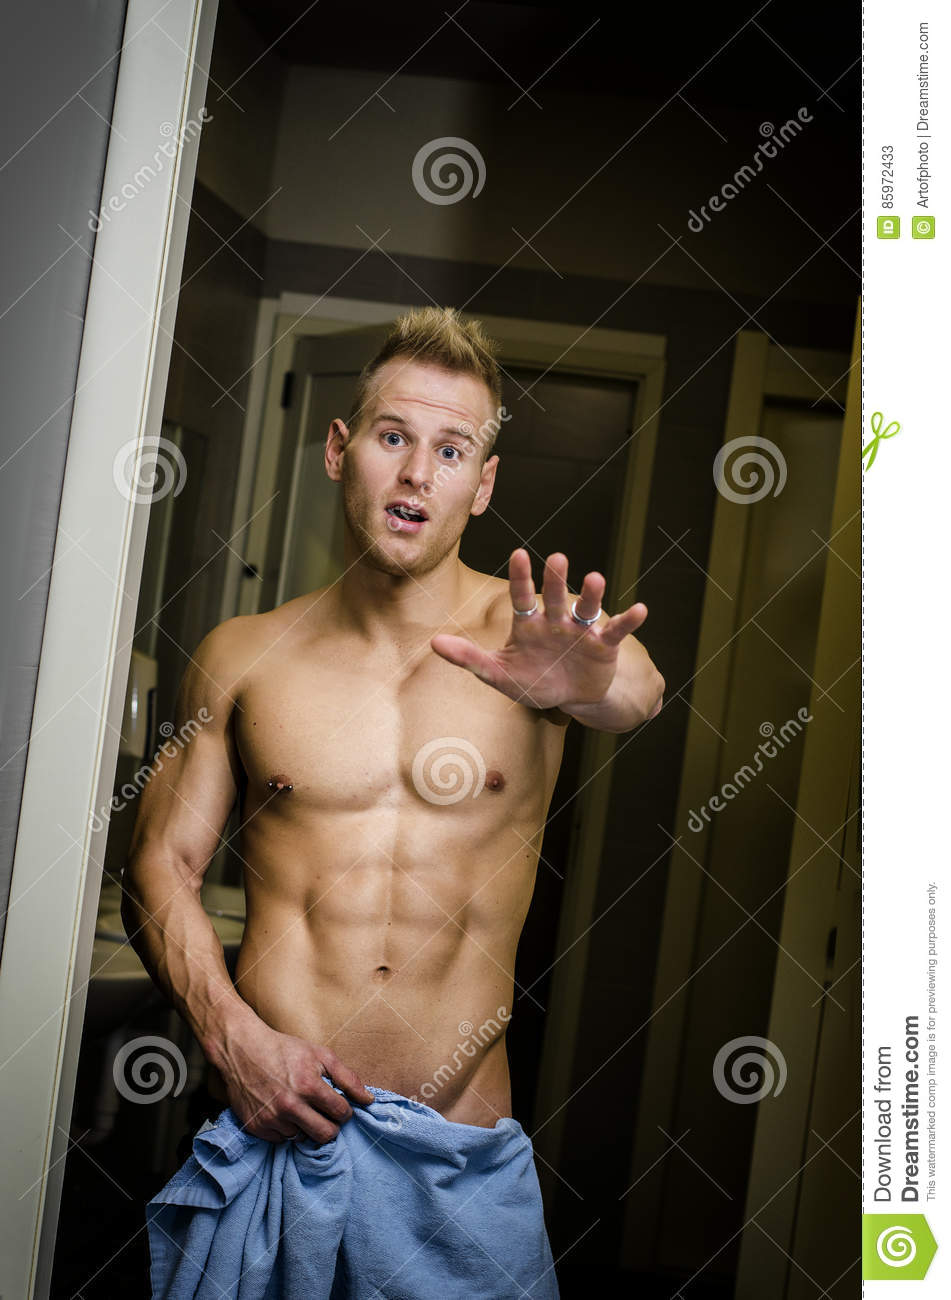 Shirtless Muscular Young Male Athlete In Gym Bathroom -2446